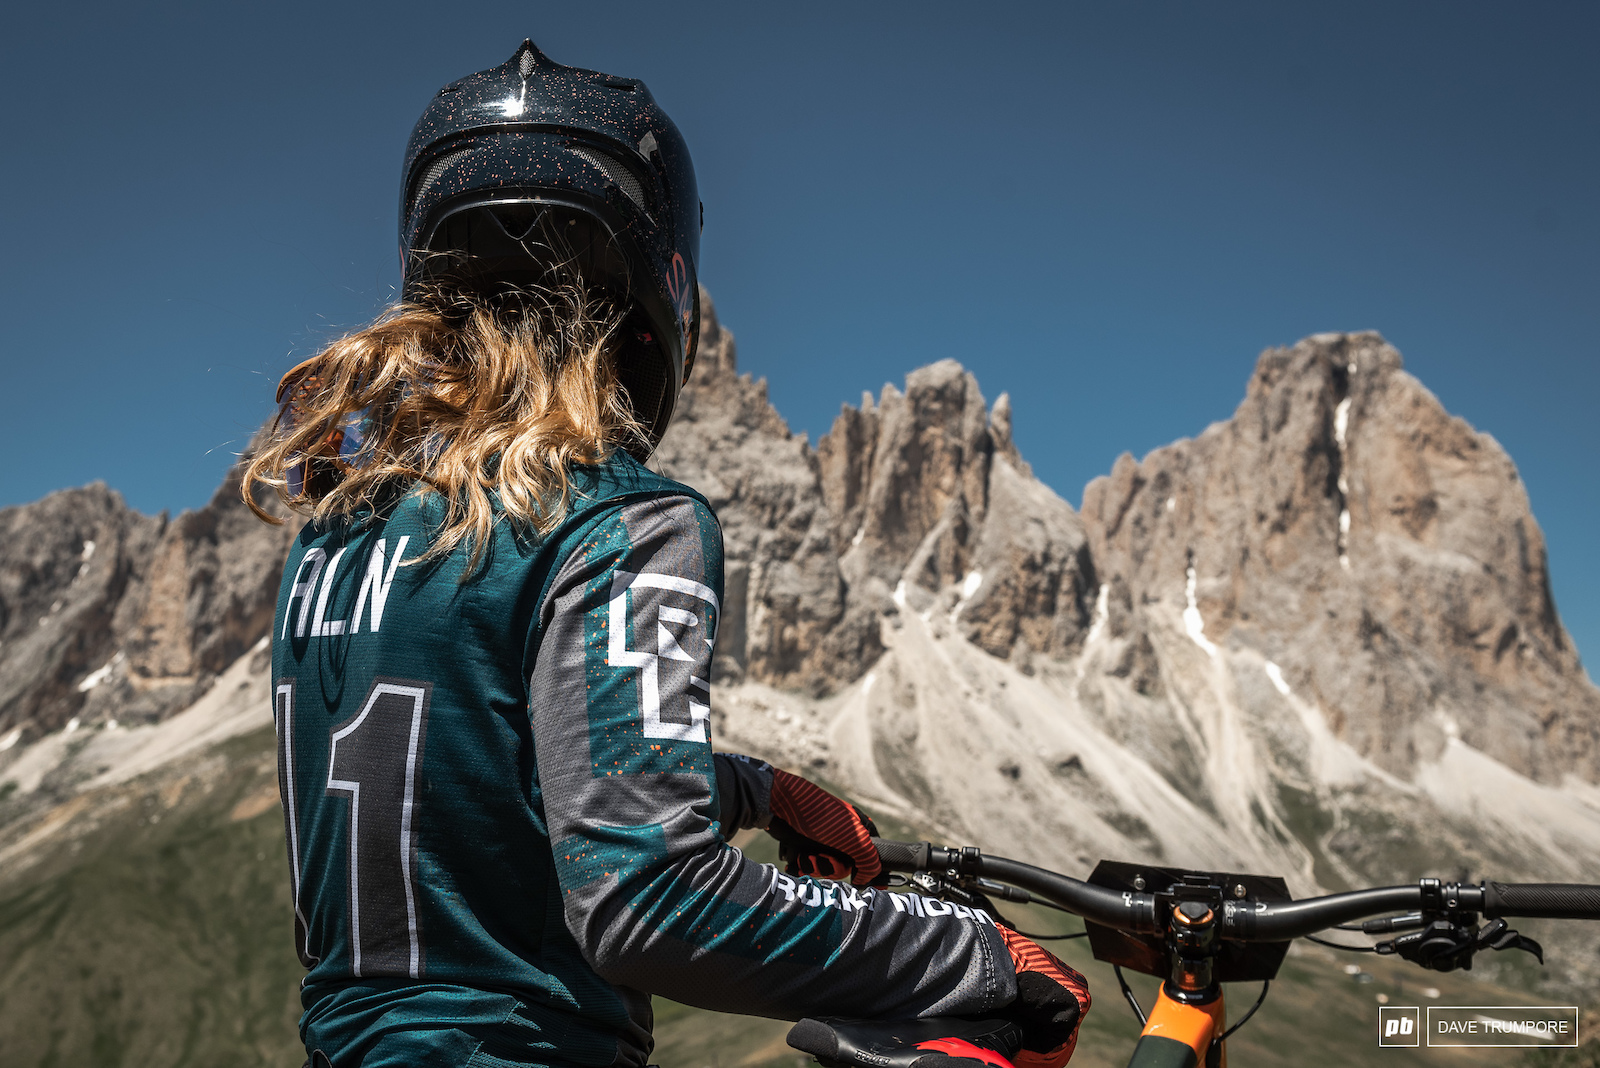 ALN taking in the incredible views of the Dolomites from the top of Stage 5.